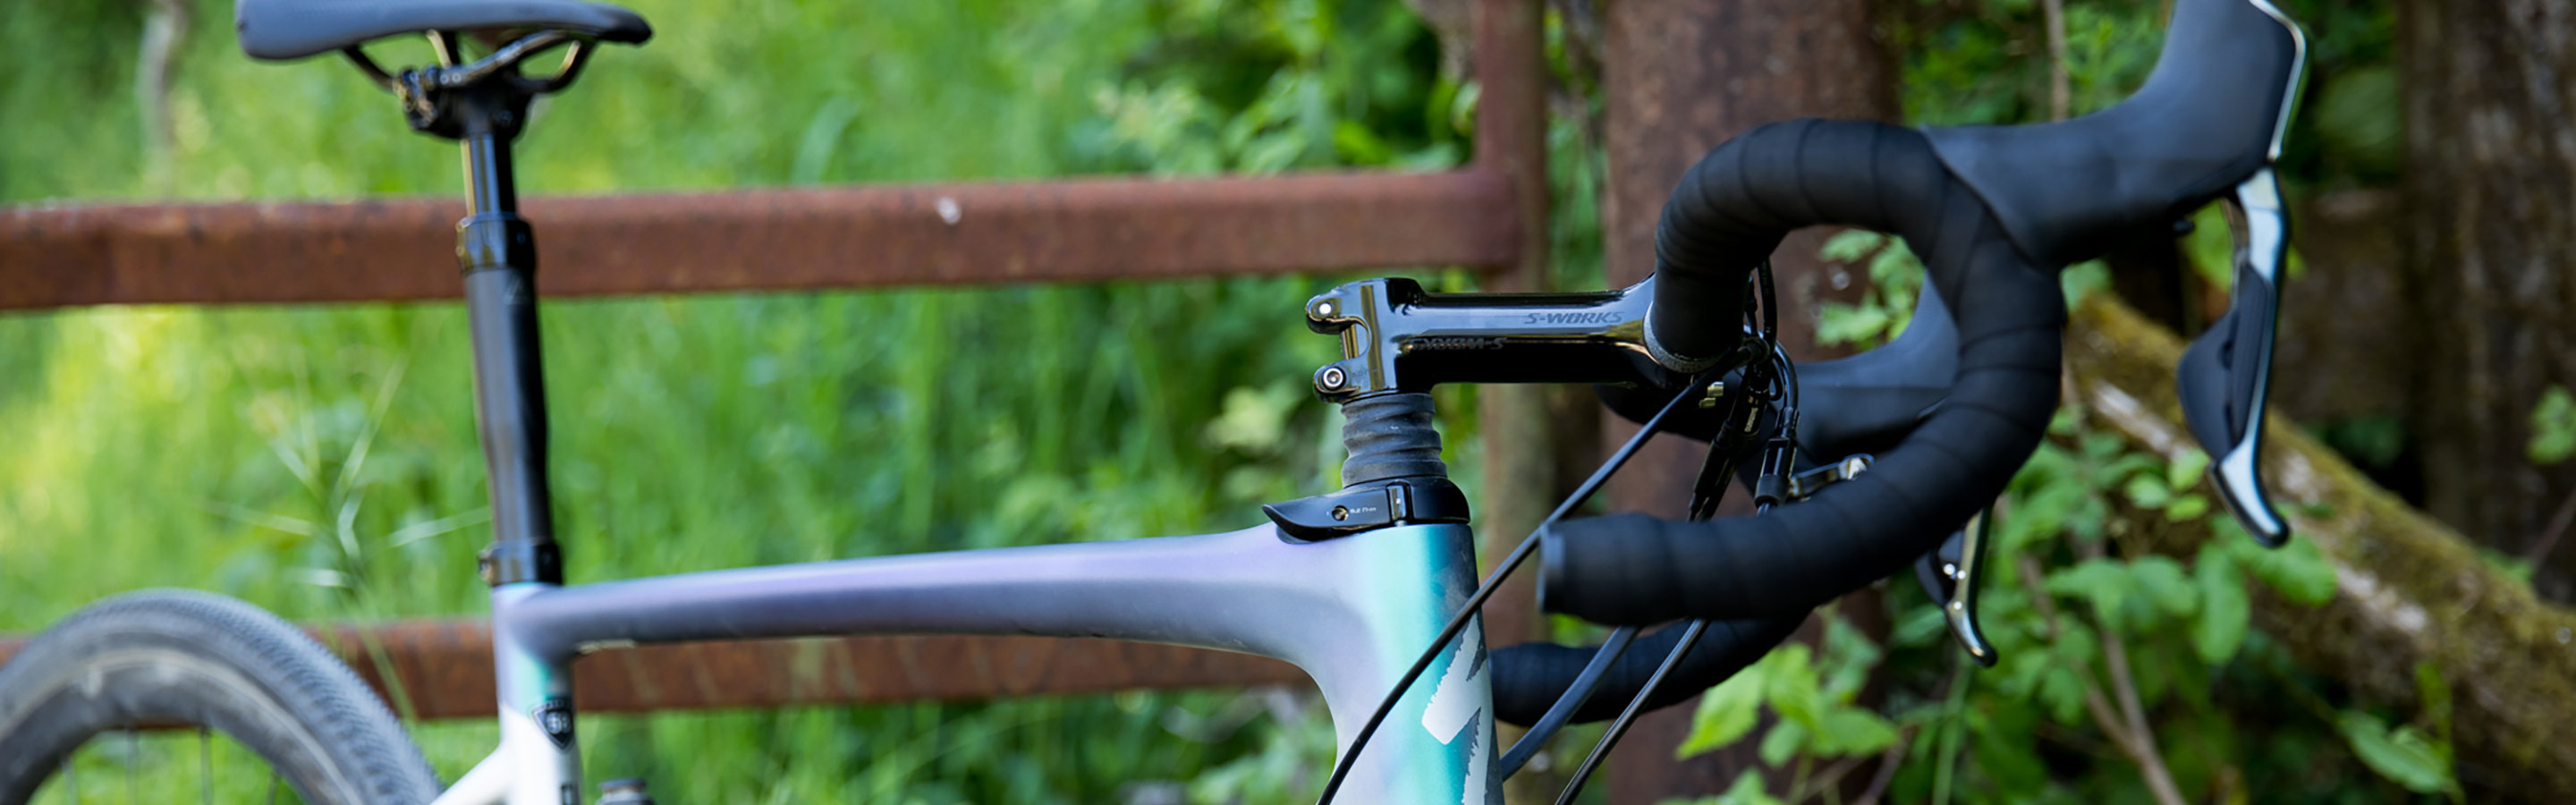 Grips & Tape | Specialized com